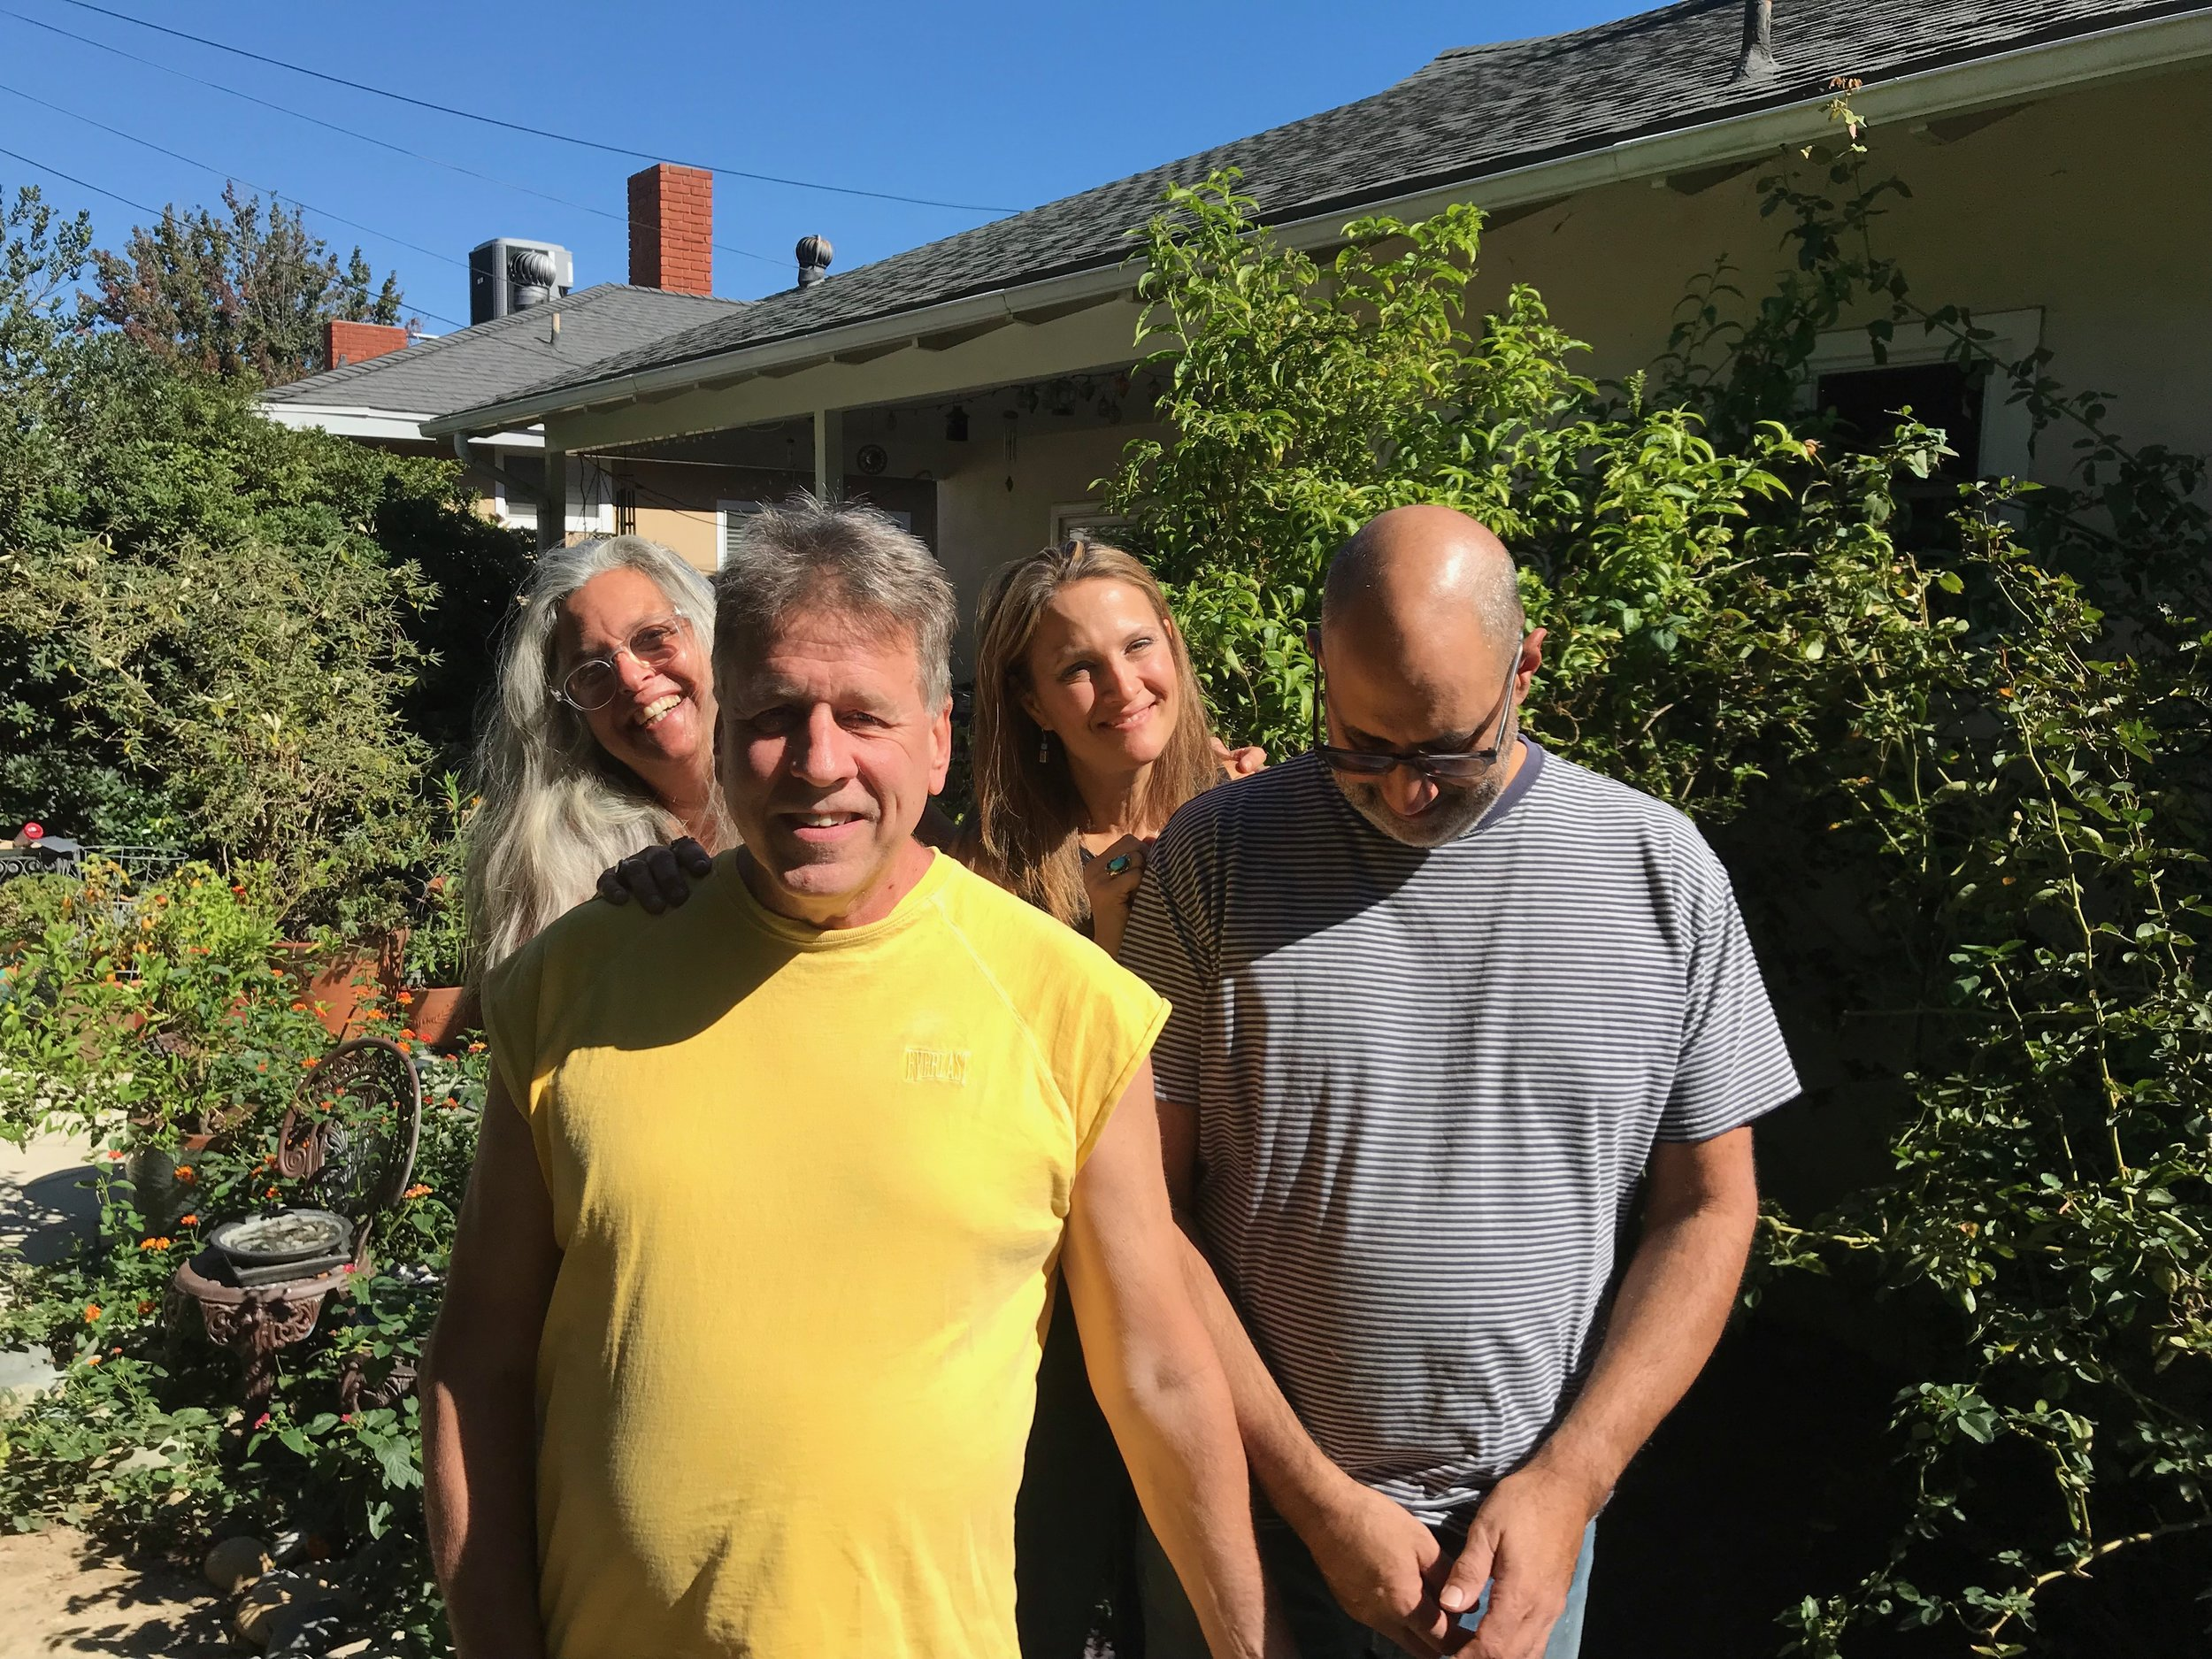 A rare real-world meeting of ccMixter collaborators in the garden warmed by the sun. With Greg Bertinelli (Copperhead), Haskel Joseph, and Emily Richards Nogowski (Madame Snowflake).